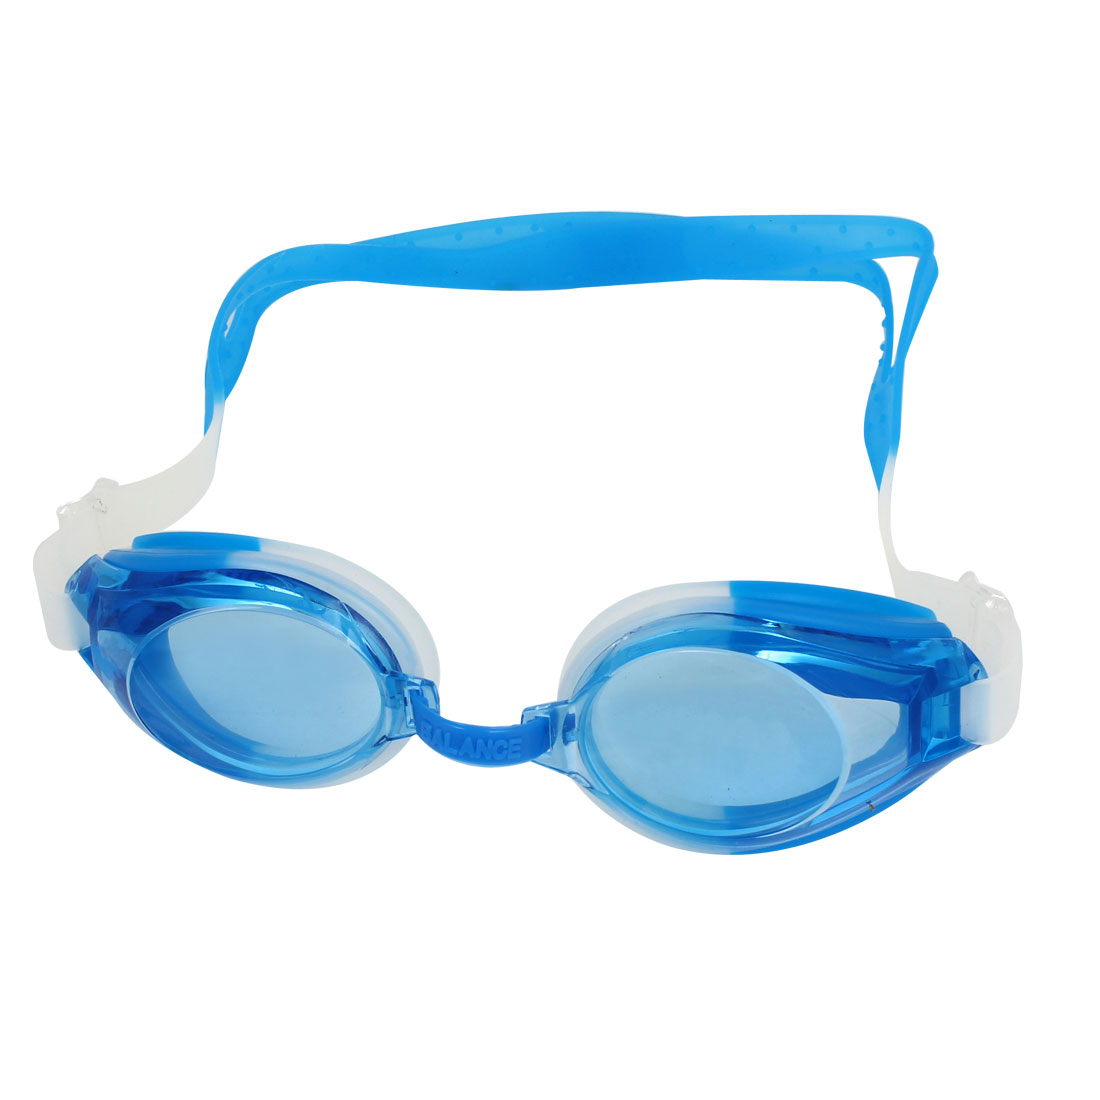 Blue White Clear Silicone Adjustable Band Swimming Goggles w Earplugs